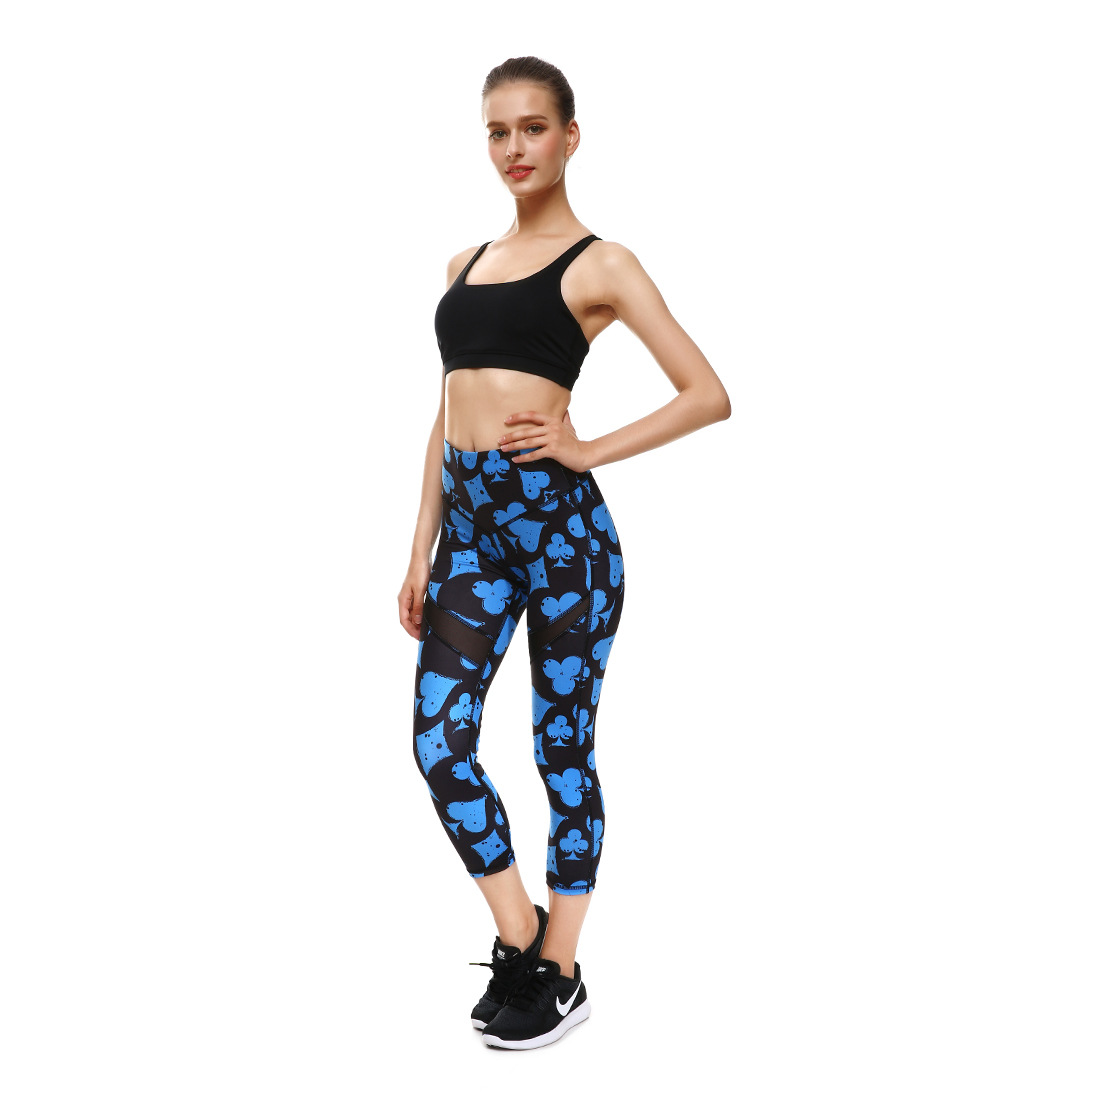 4163c96422606 ... Women's Active Peformance Printed Capri With Mesh Detail ,. OFFER  WHOLESALE & ONLINE FREE DROP SHIPPING